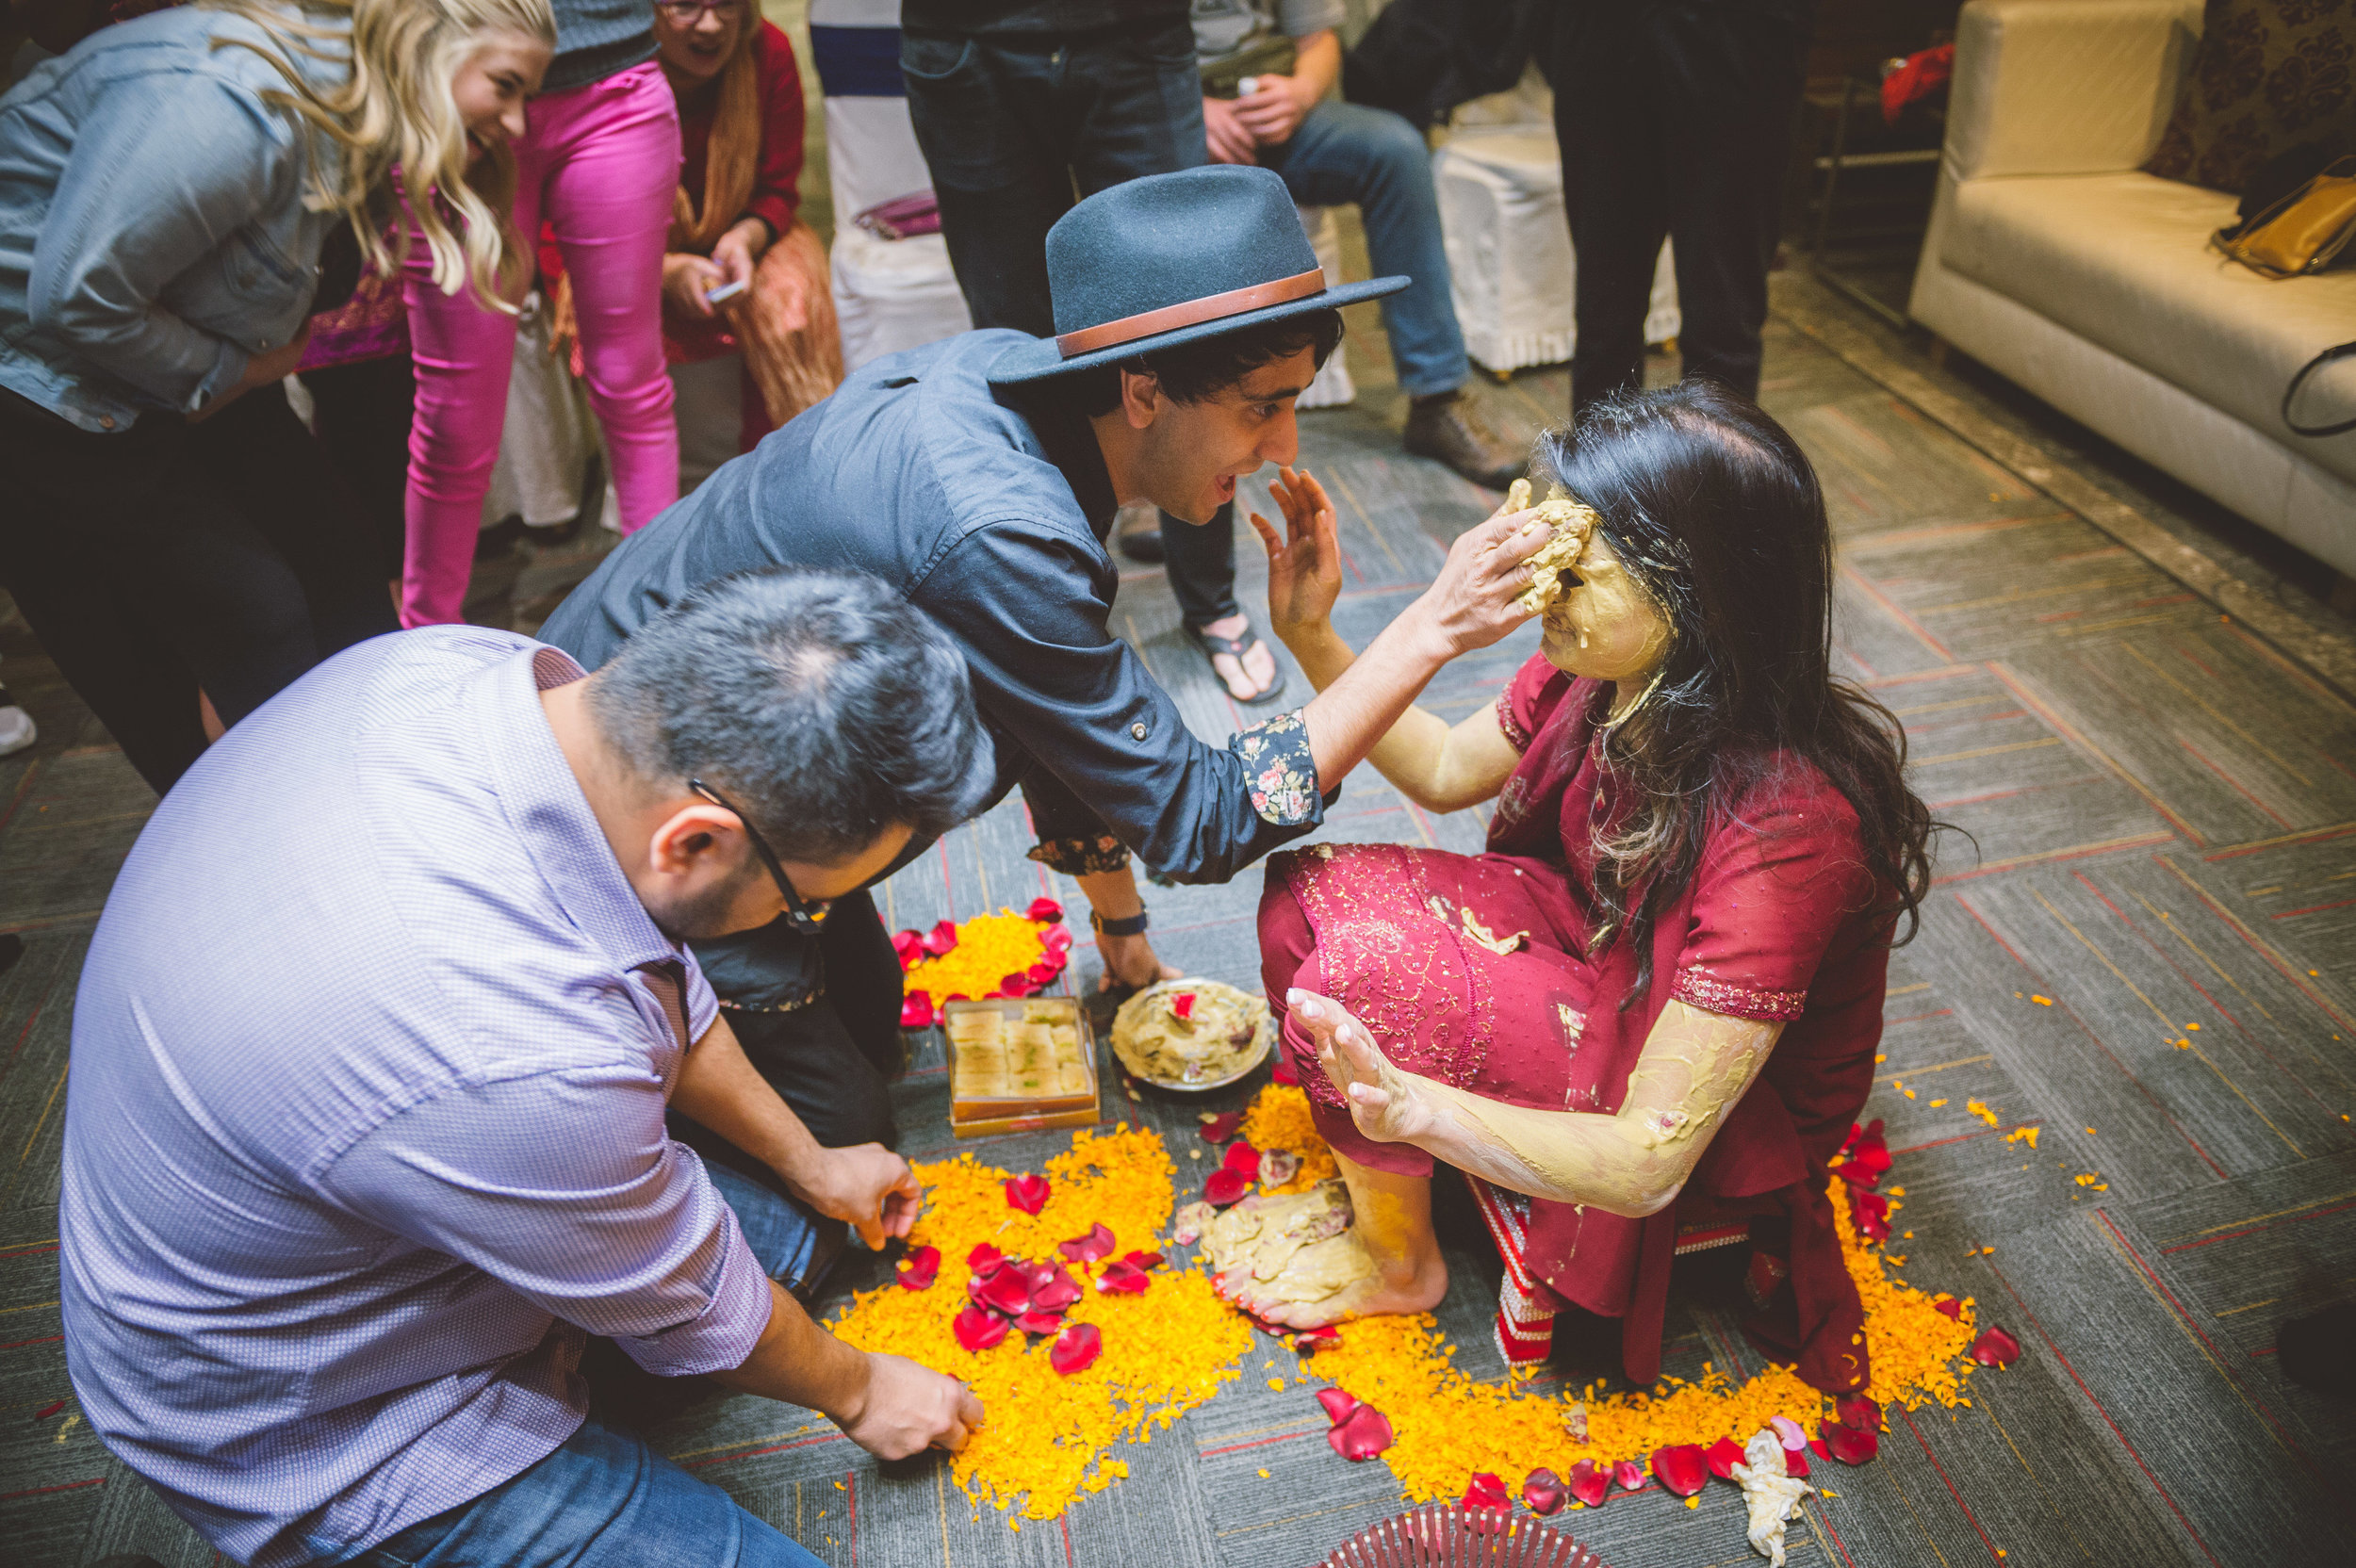 The bride's youngest brother putting a good amount of turmeric paste on his sister's face.